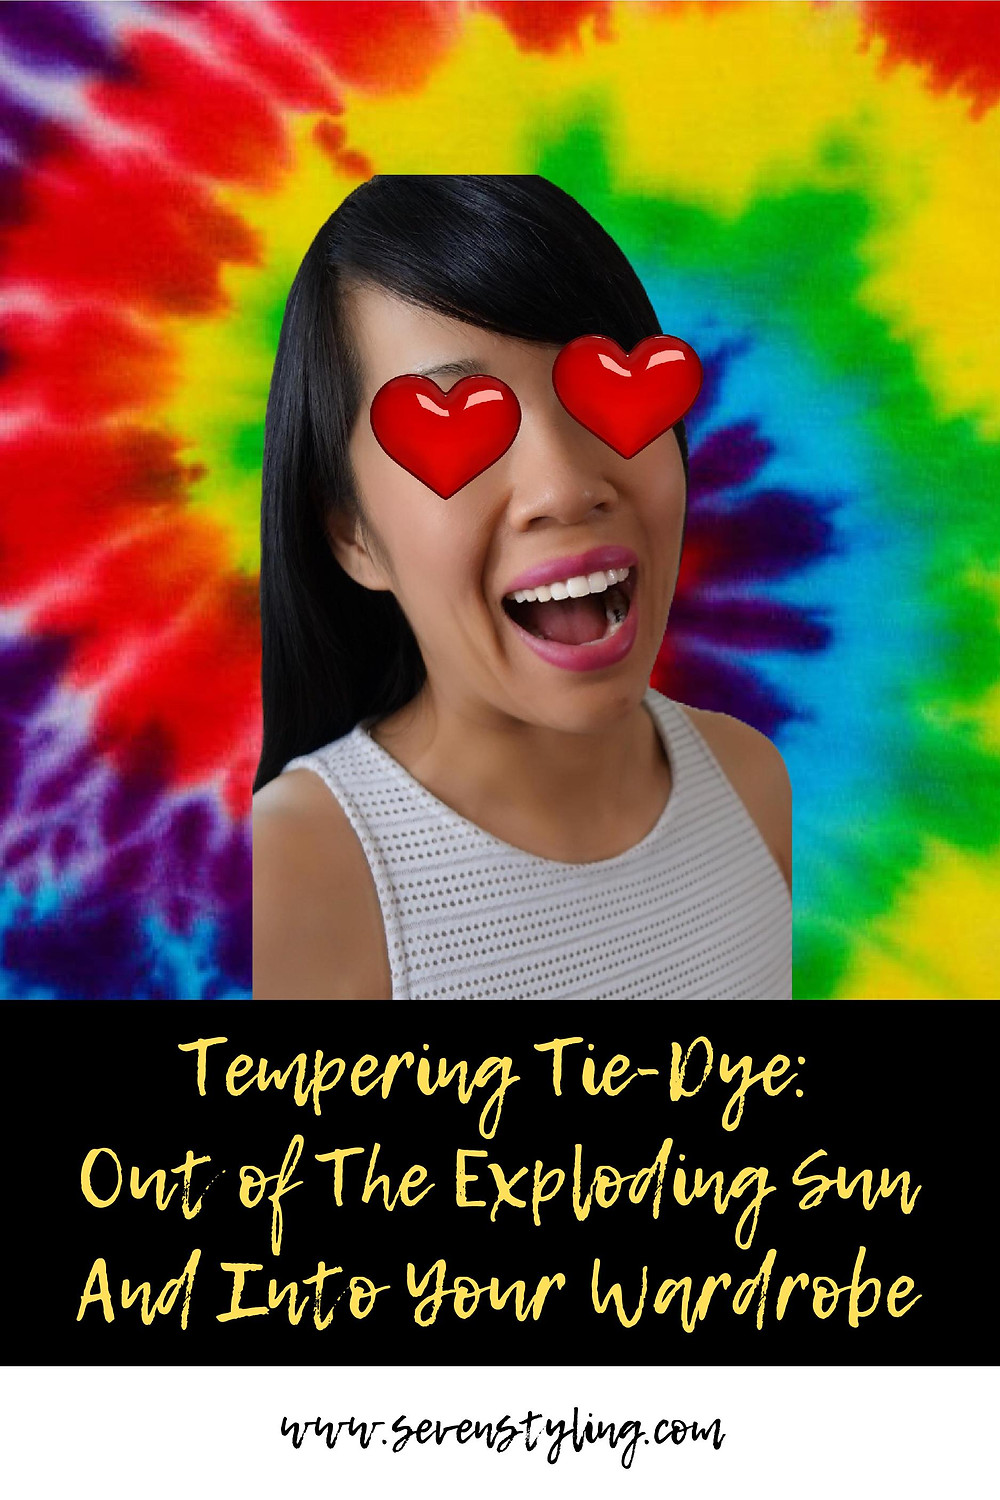 Tempering Tie-Dye: Out of the exlpoding sun and into your wardrobe